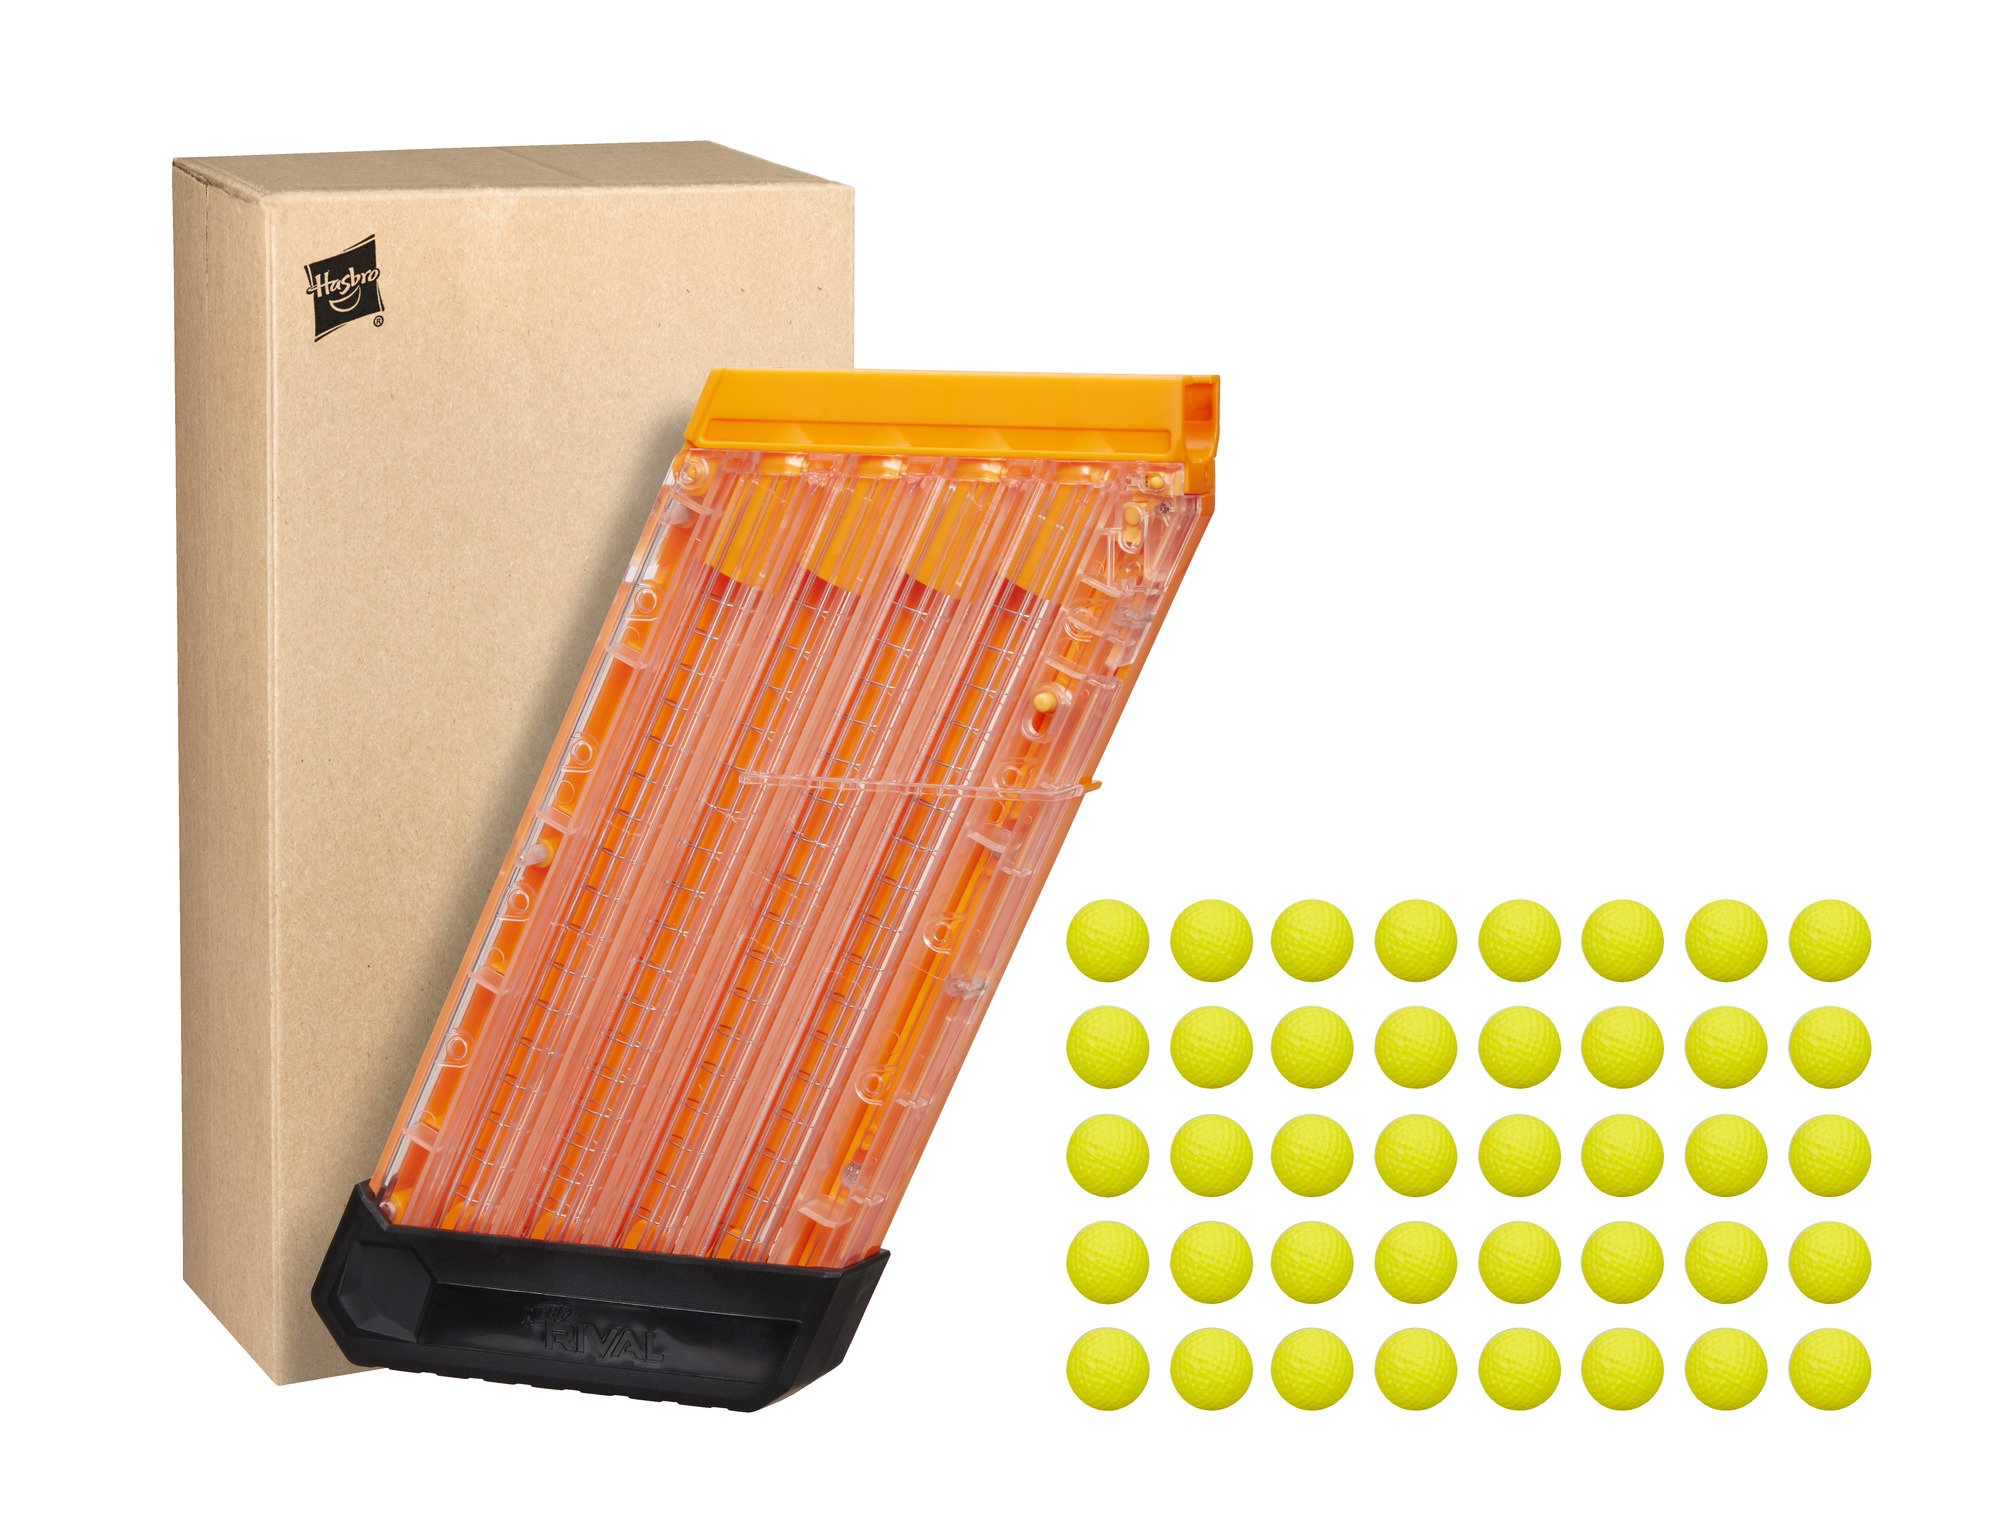 NERF Rival 40-Round Refill Pack and 40-Round Magazine by NERF (Image #2)